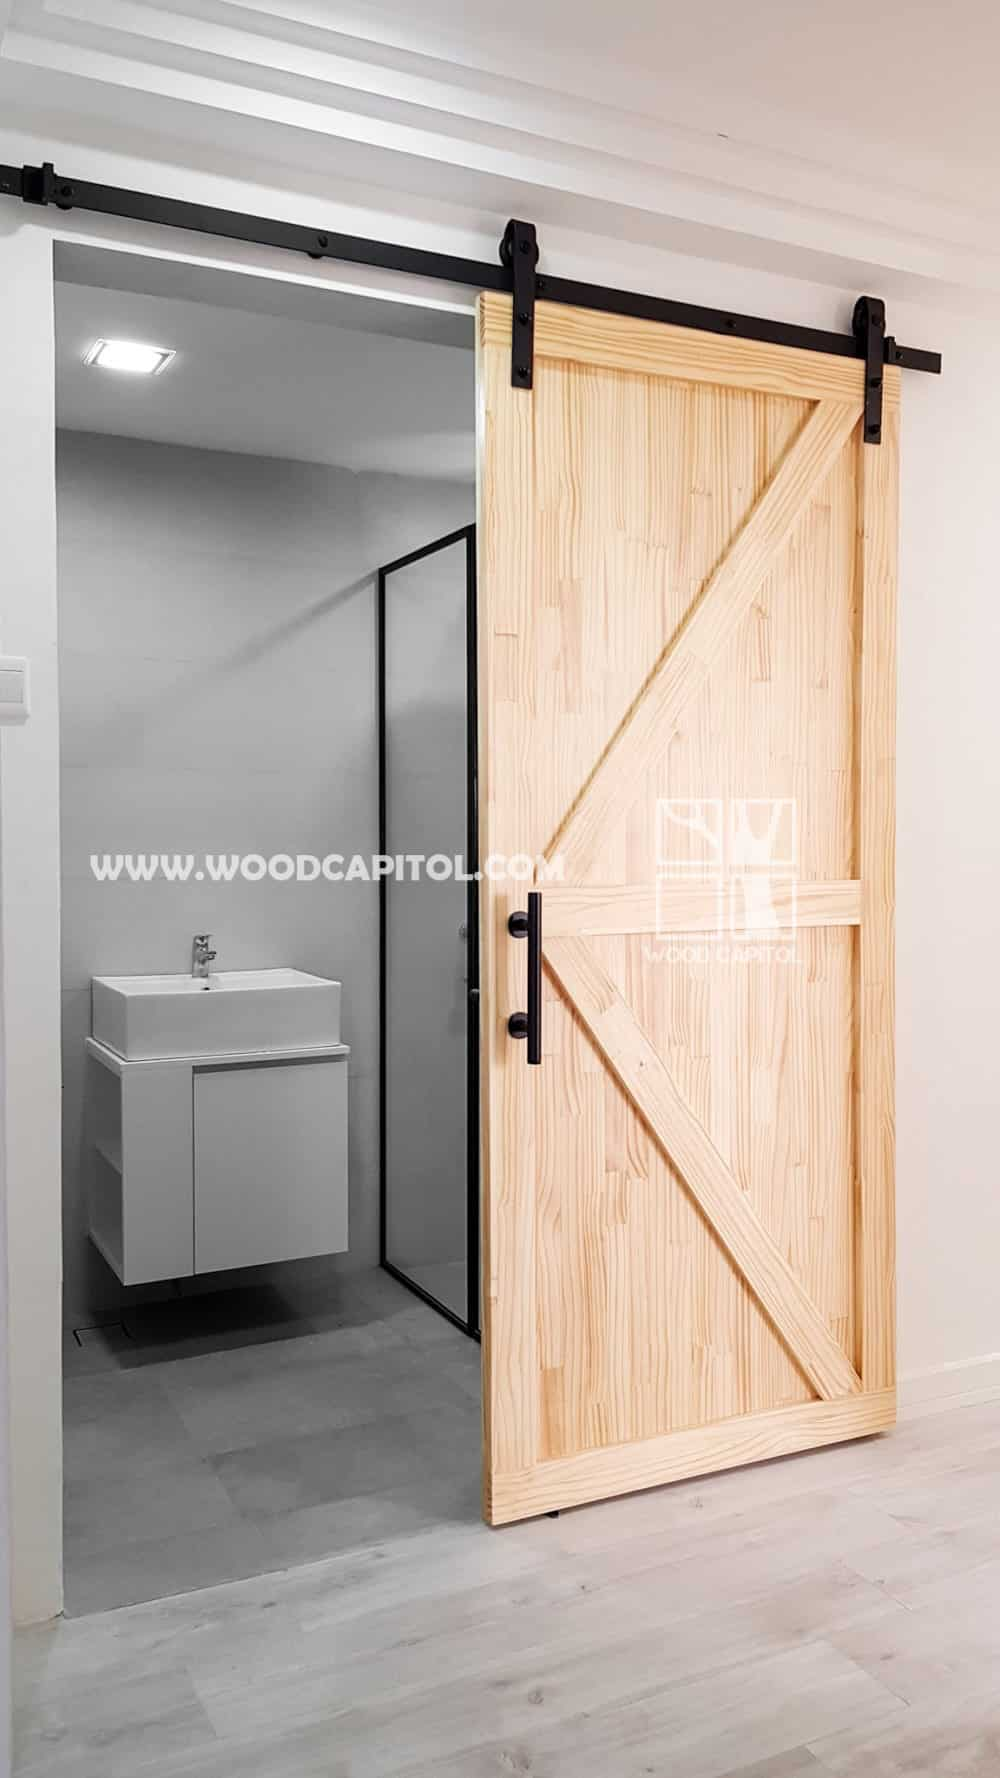 Wood Capitol Pine Wood Door